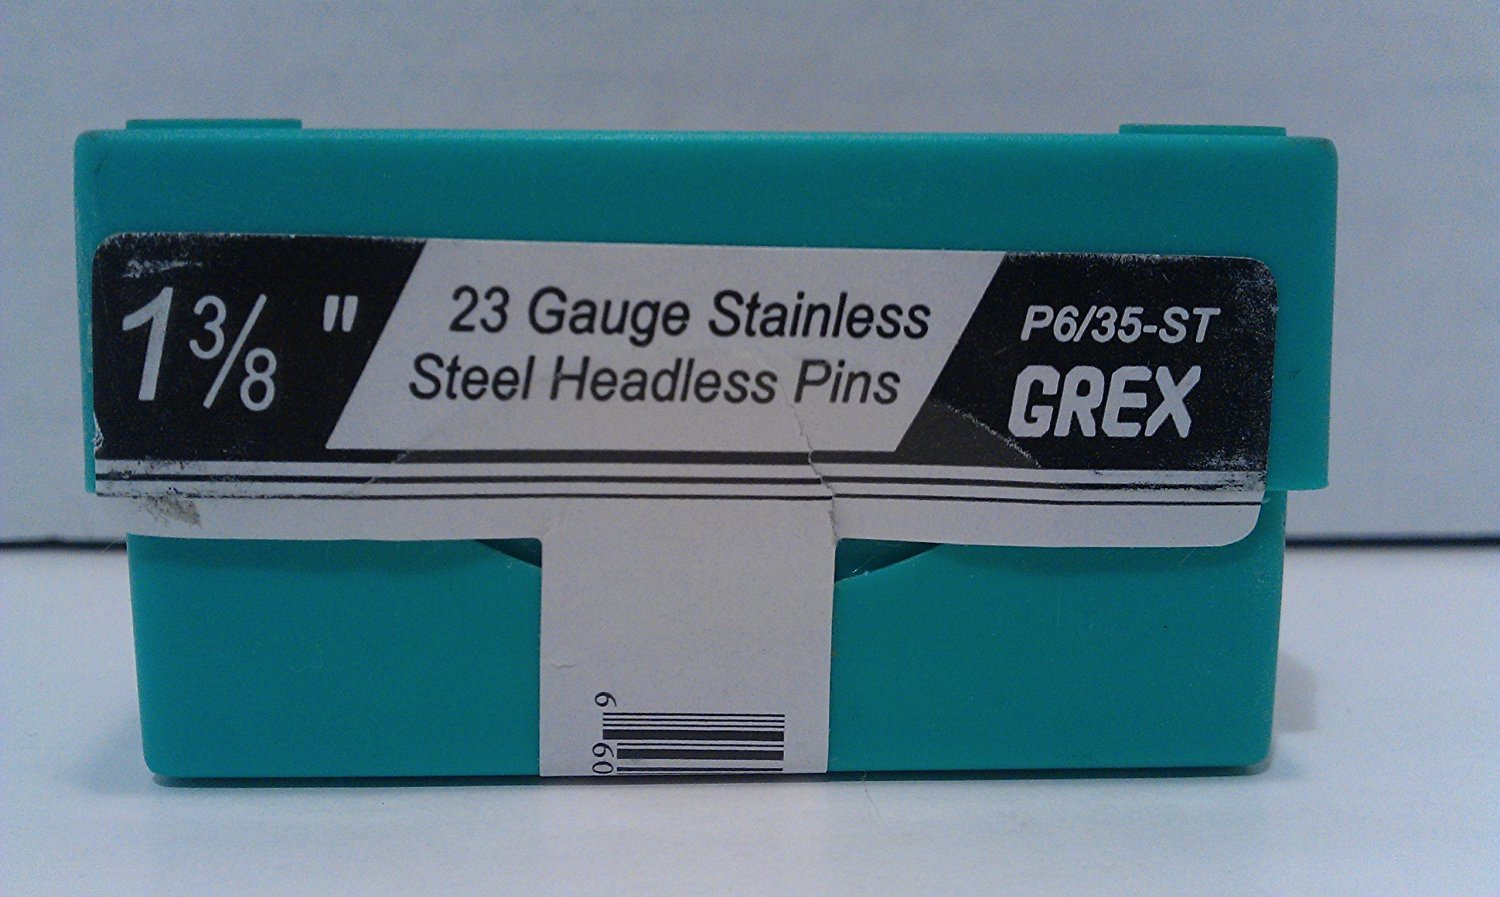 (10,000 Count) Grex P6/35-ST Headless Pins 1-3/8-Inch 23 Gauge Stainless Steel